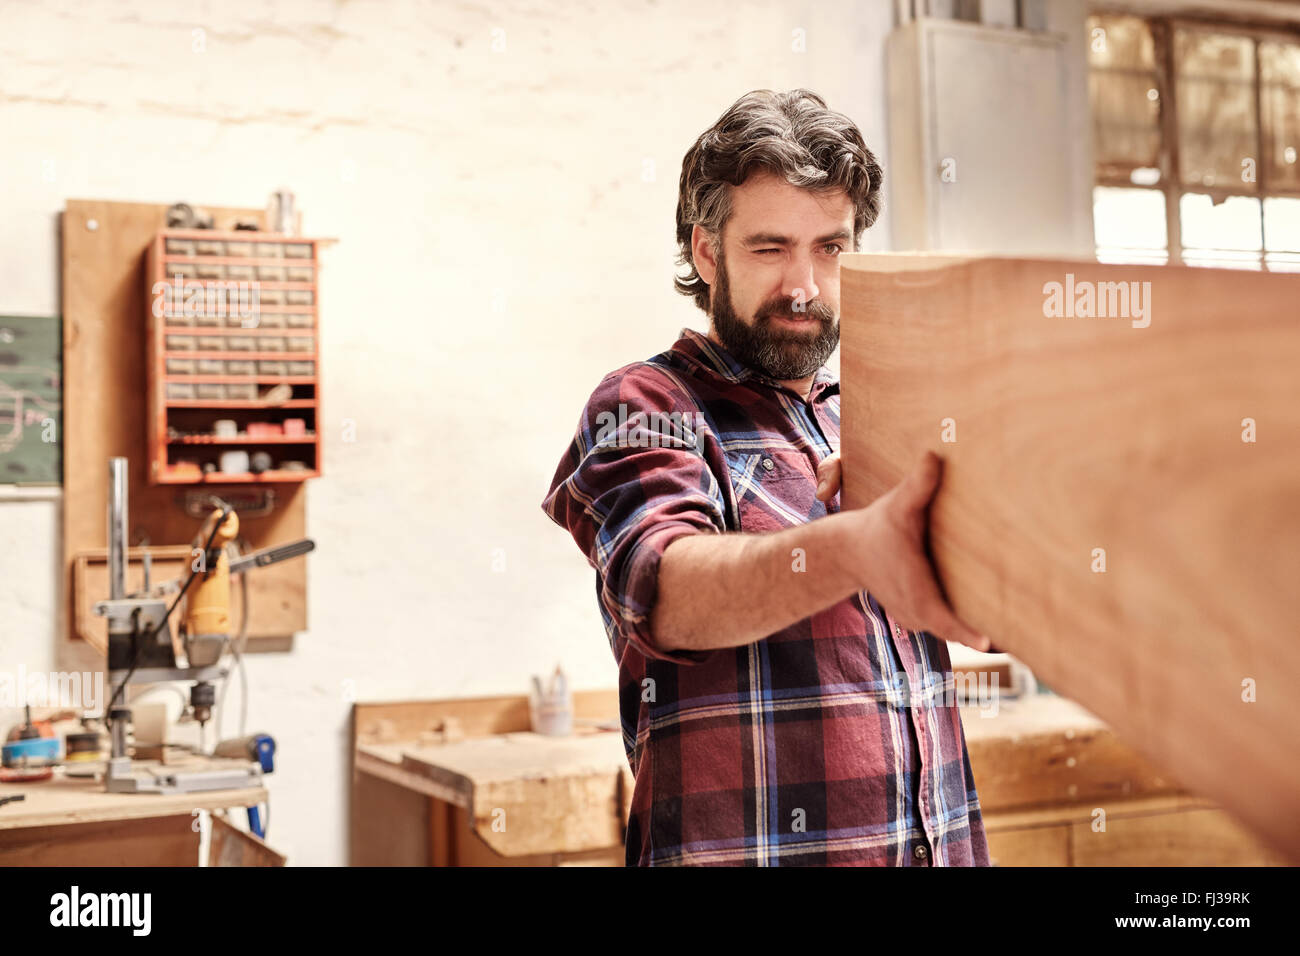 Skilled craftsman inspecting a wooden plank for quality of cut - Stock Image